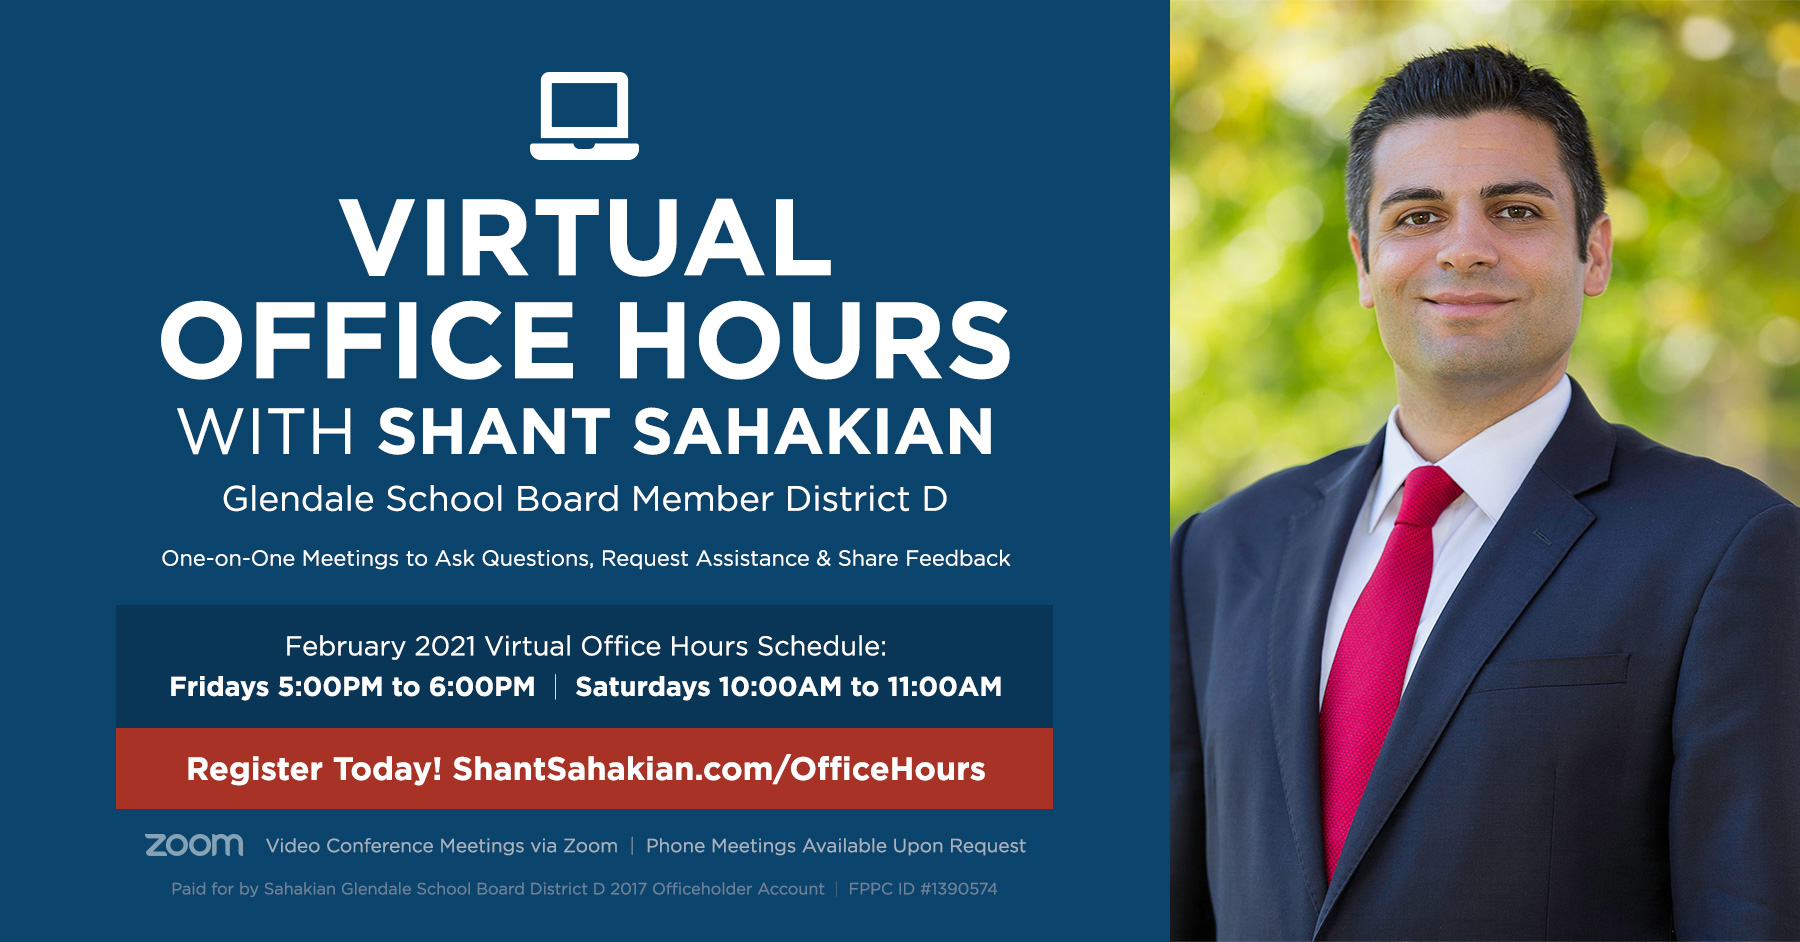 Virtual Office Hours with Glendale School Board Member Shant Sahakian February 2021 Web